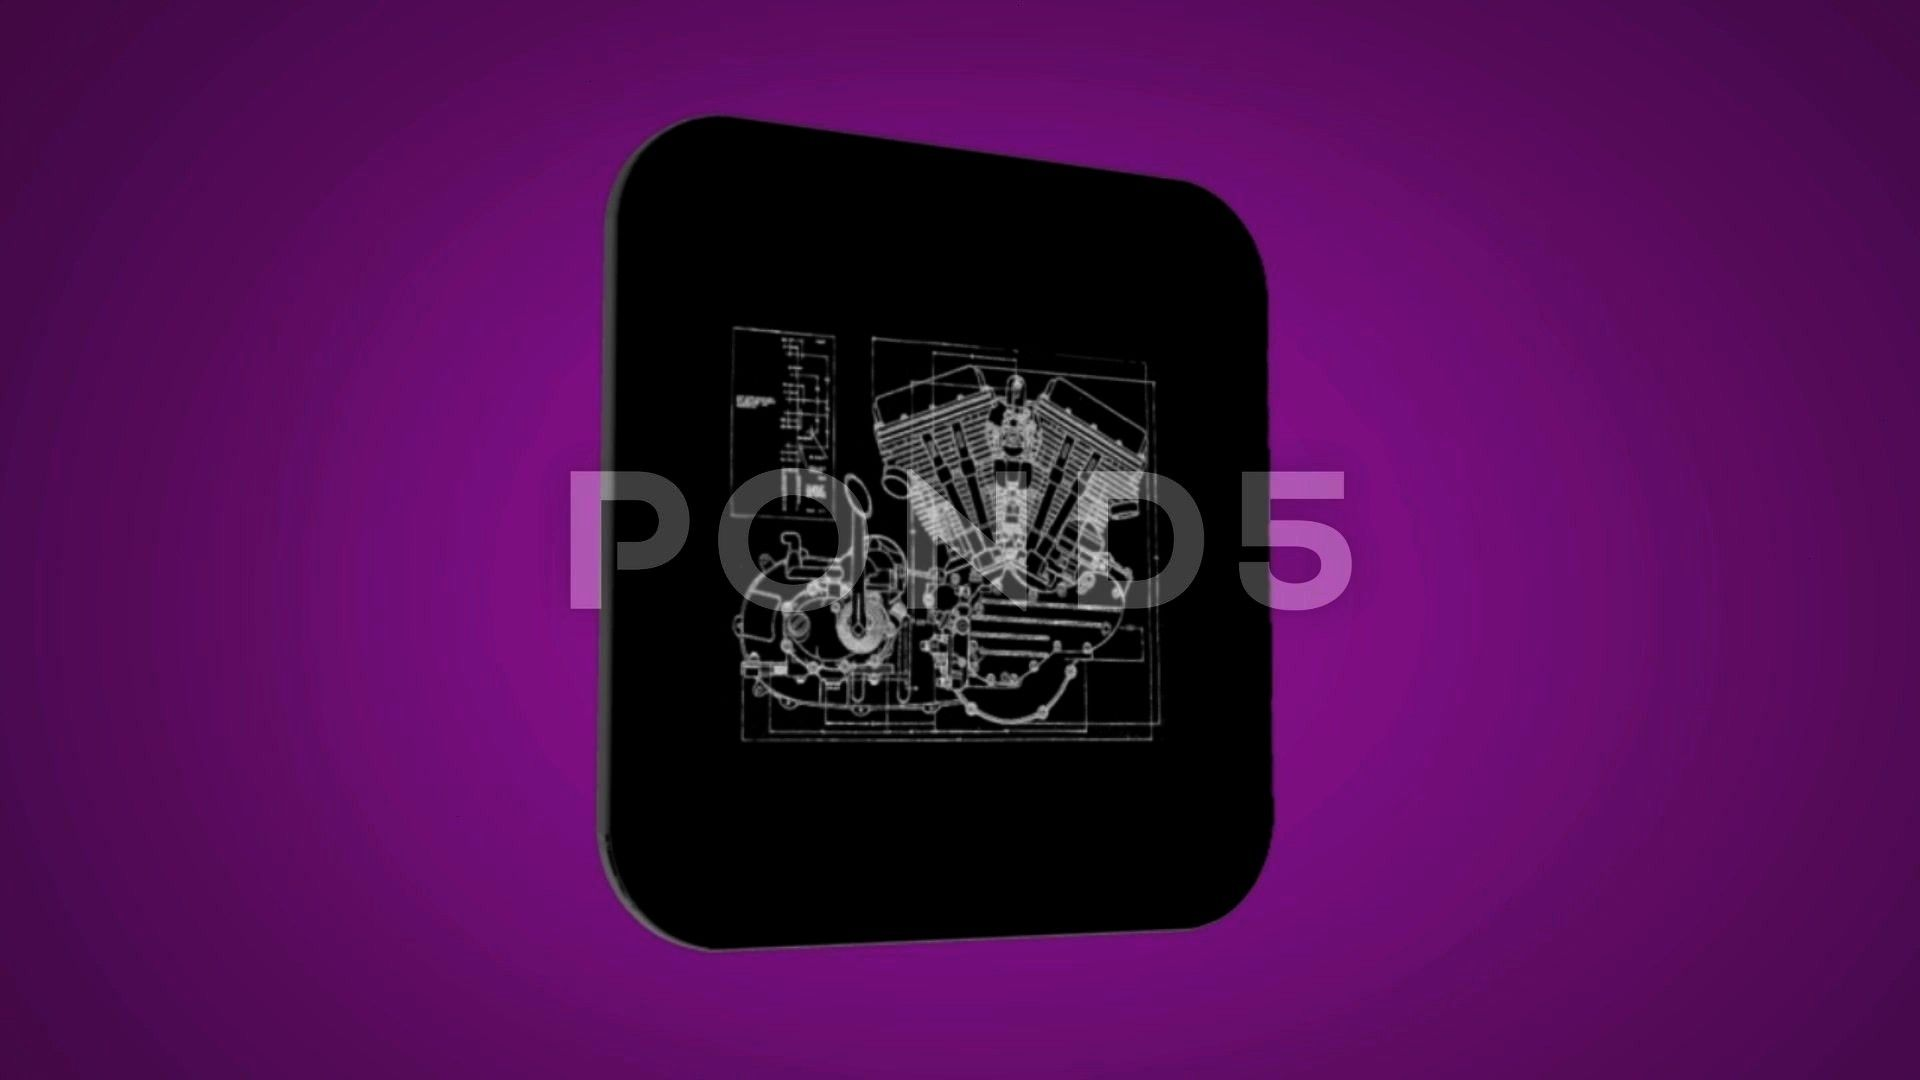 intro - Candle Engine - Transition Blueprint - purple 02 Stock Footage ,#Candle#Engine#intro#Vector